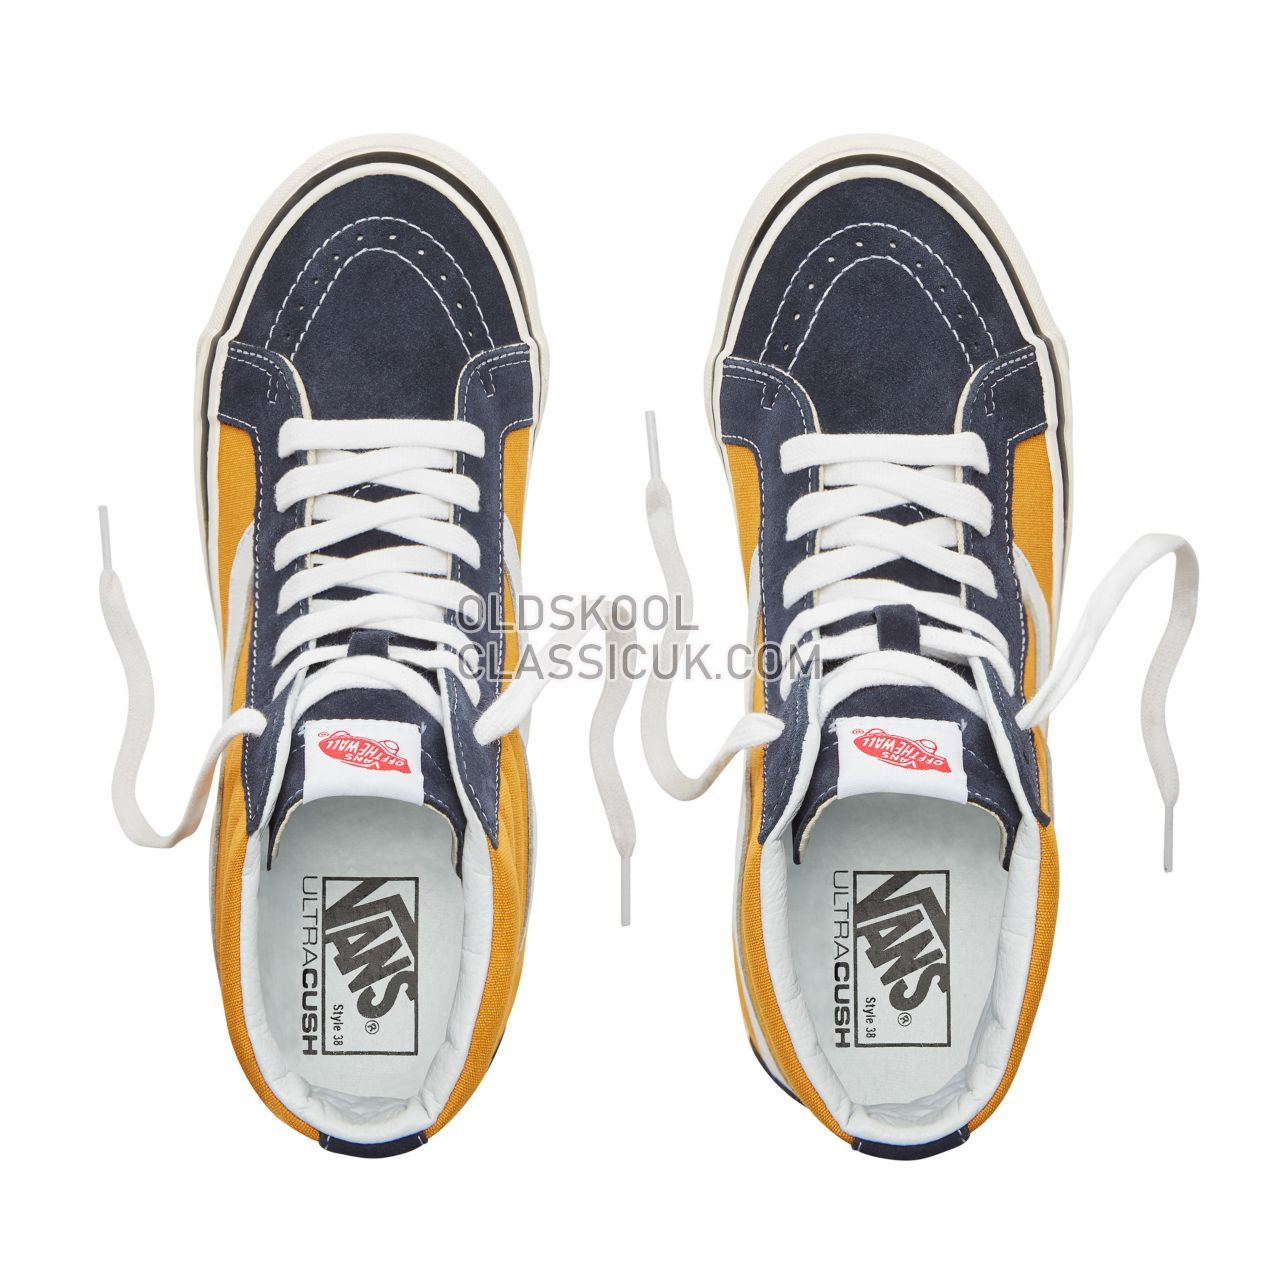 Vans Suede Anaheim Factory Sk8-Hi 38 Sneakers Mens (Anaheim Factory) Og Navy/Og Saffron VA38GFUBT Shoes